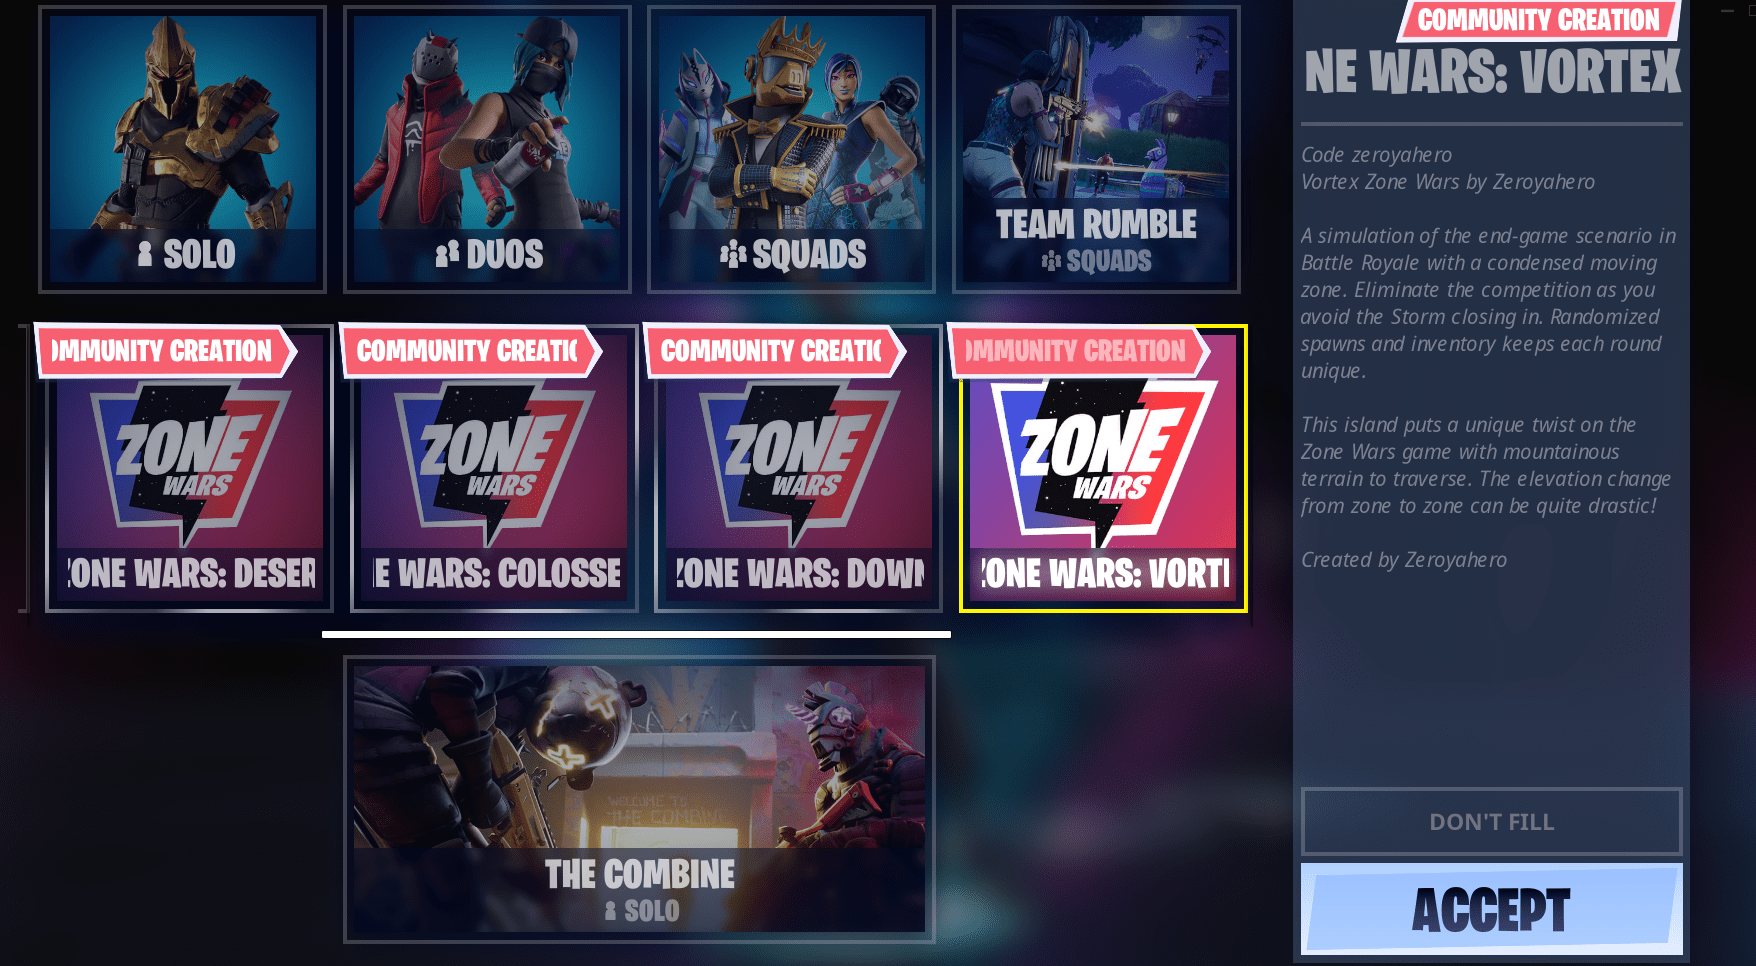 Fortnite Zone Wars Challenges Available Now The Zone Wars Challenges Are Now Live In Fortnite Battle Royale And Here Are All Of The Fortnite The End Game War